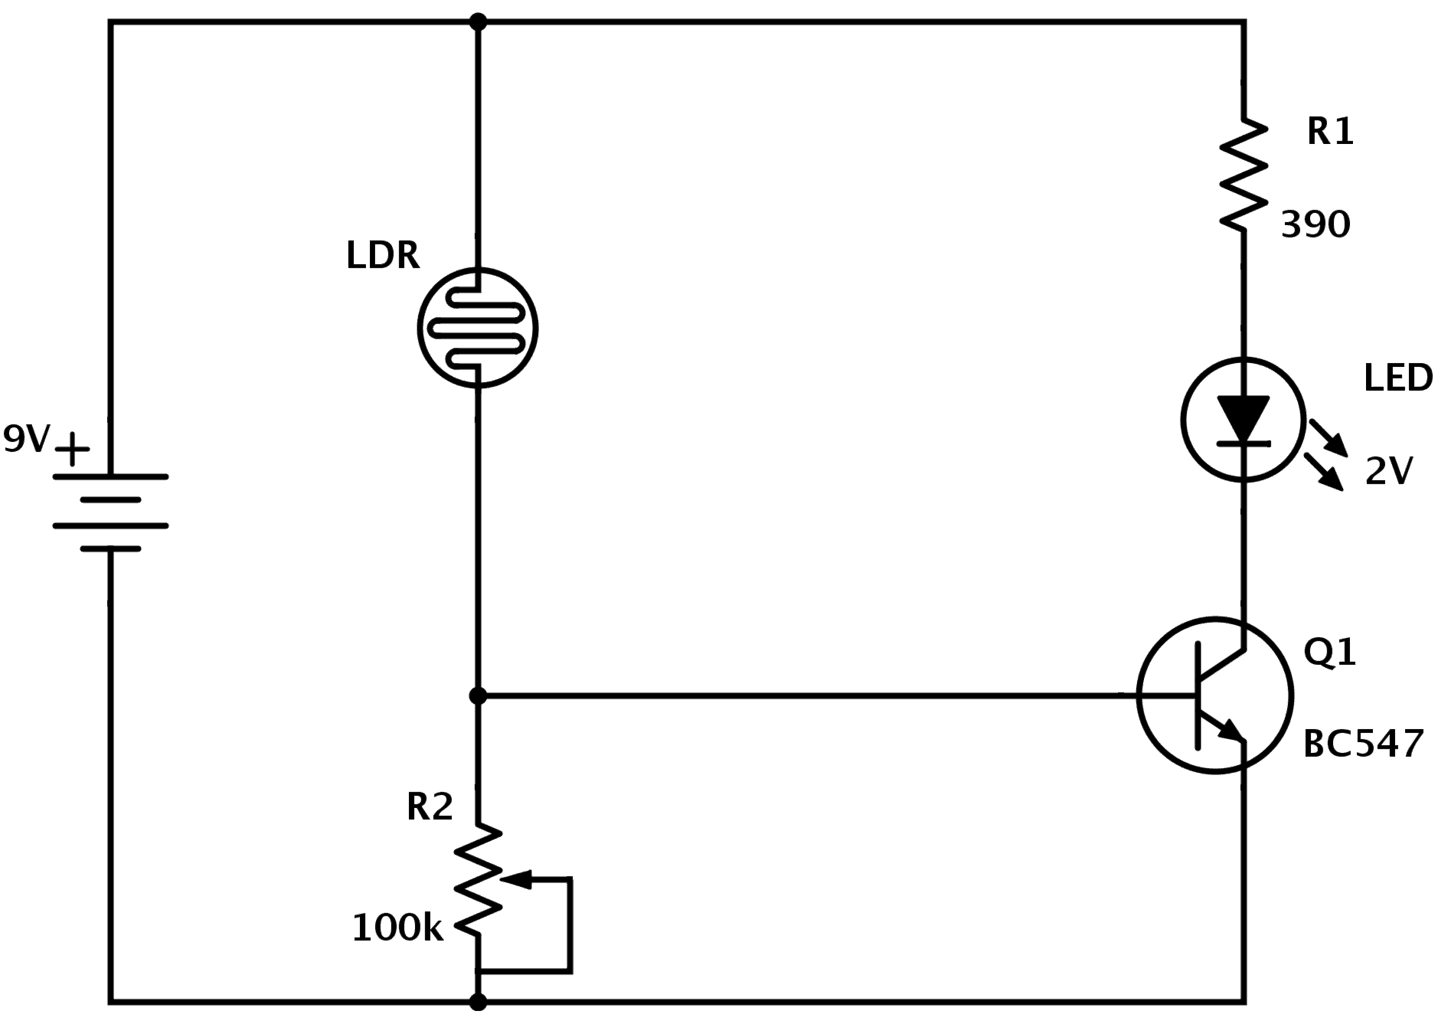 Ldr Circuit Diagram Build Electronic Circuits 3 Way Switch Wiring Multiple